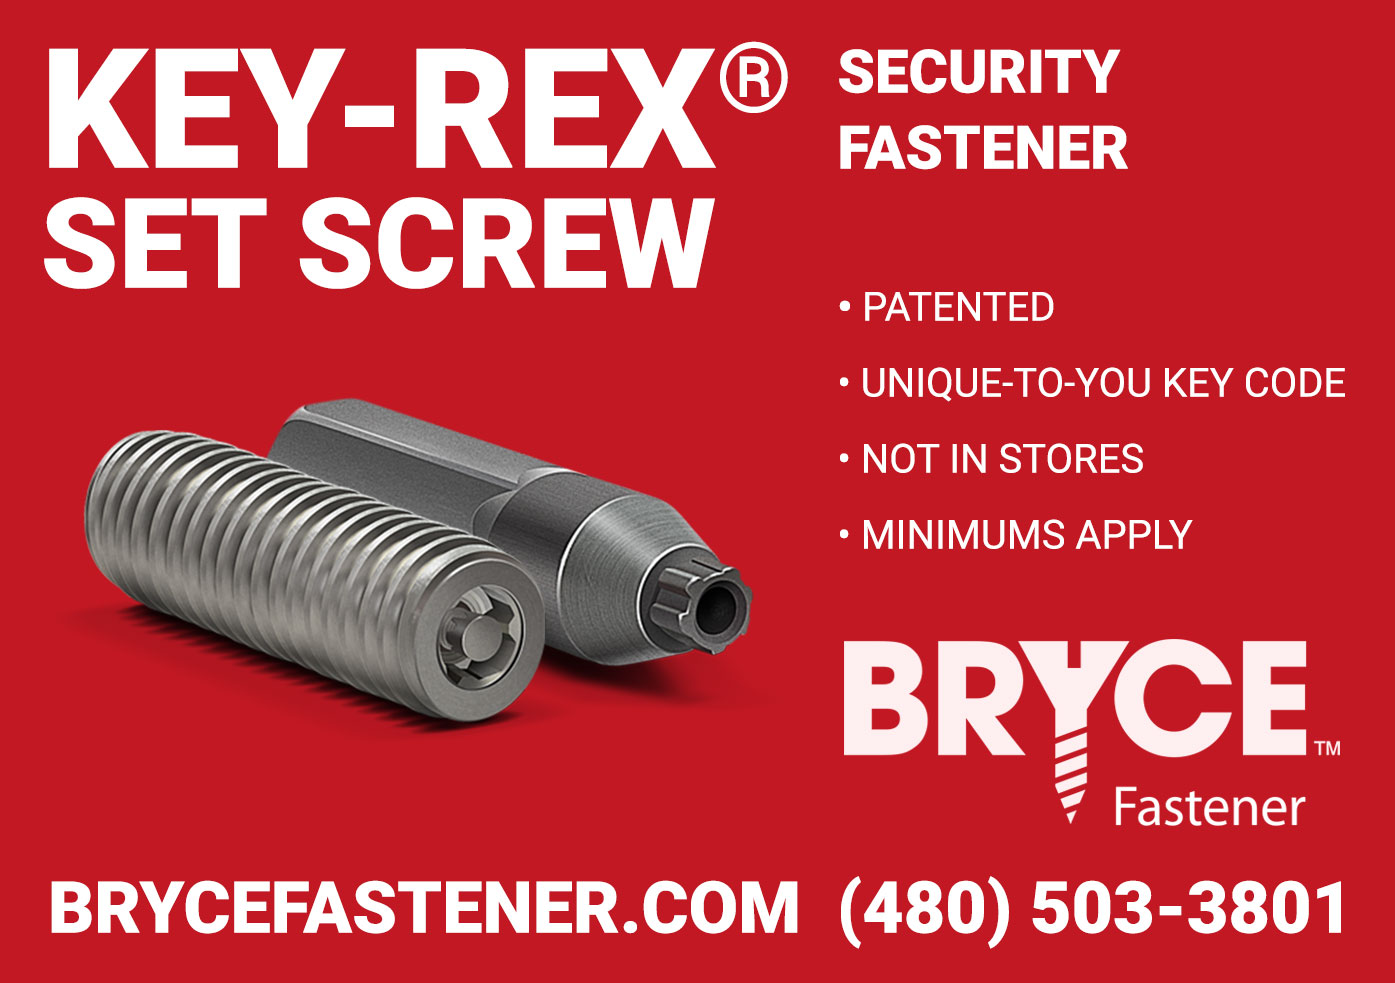 Key-Rex® Set Screw Security Screws